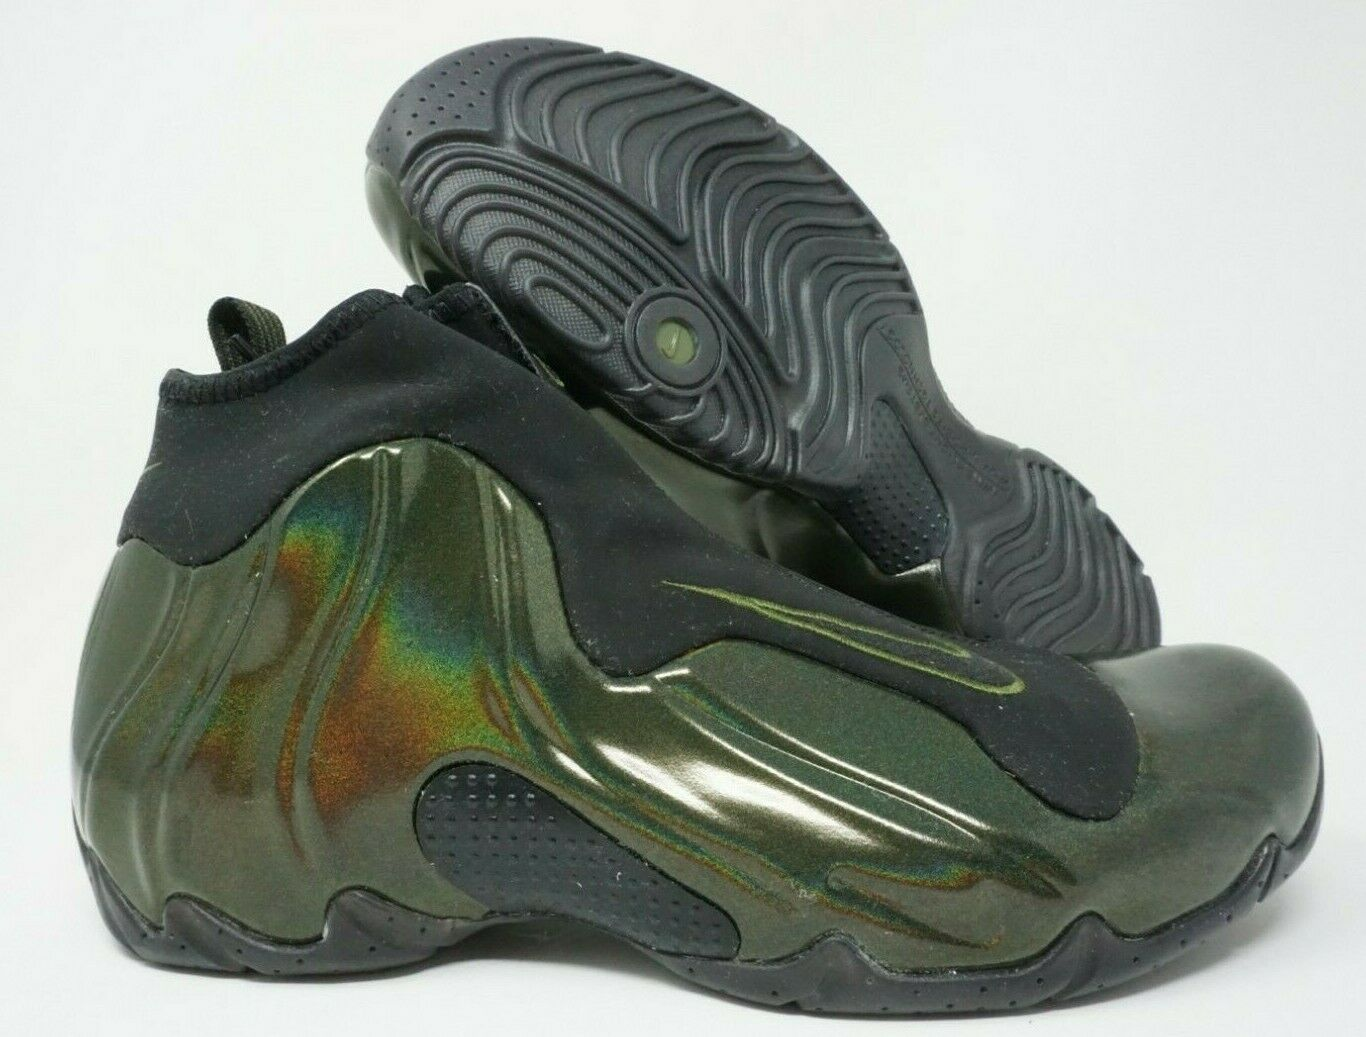 Nike Air Flightposite Mens Basketball shoes Legion Green Black Multi Size